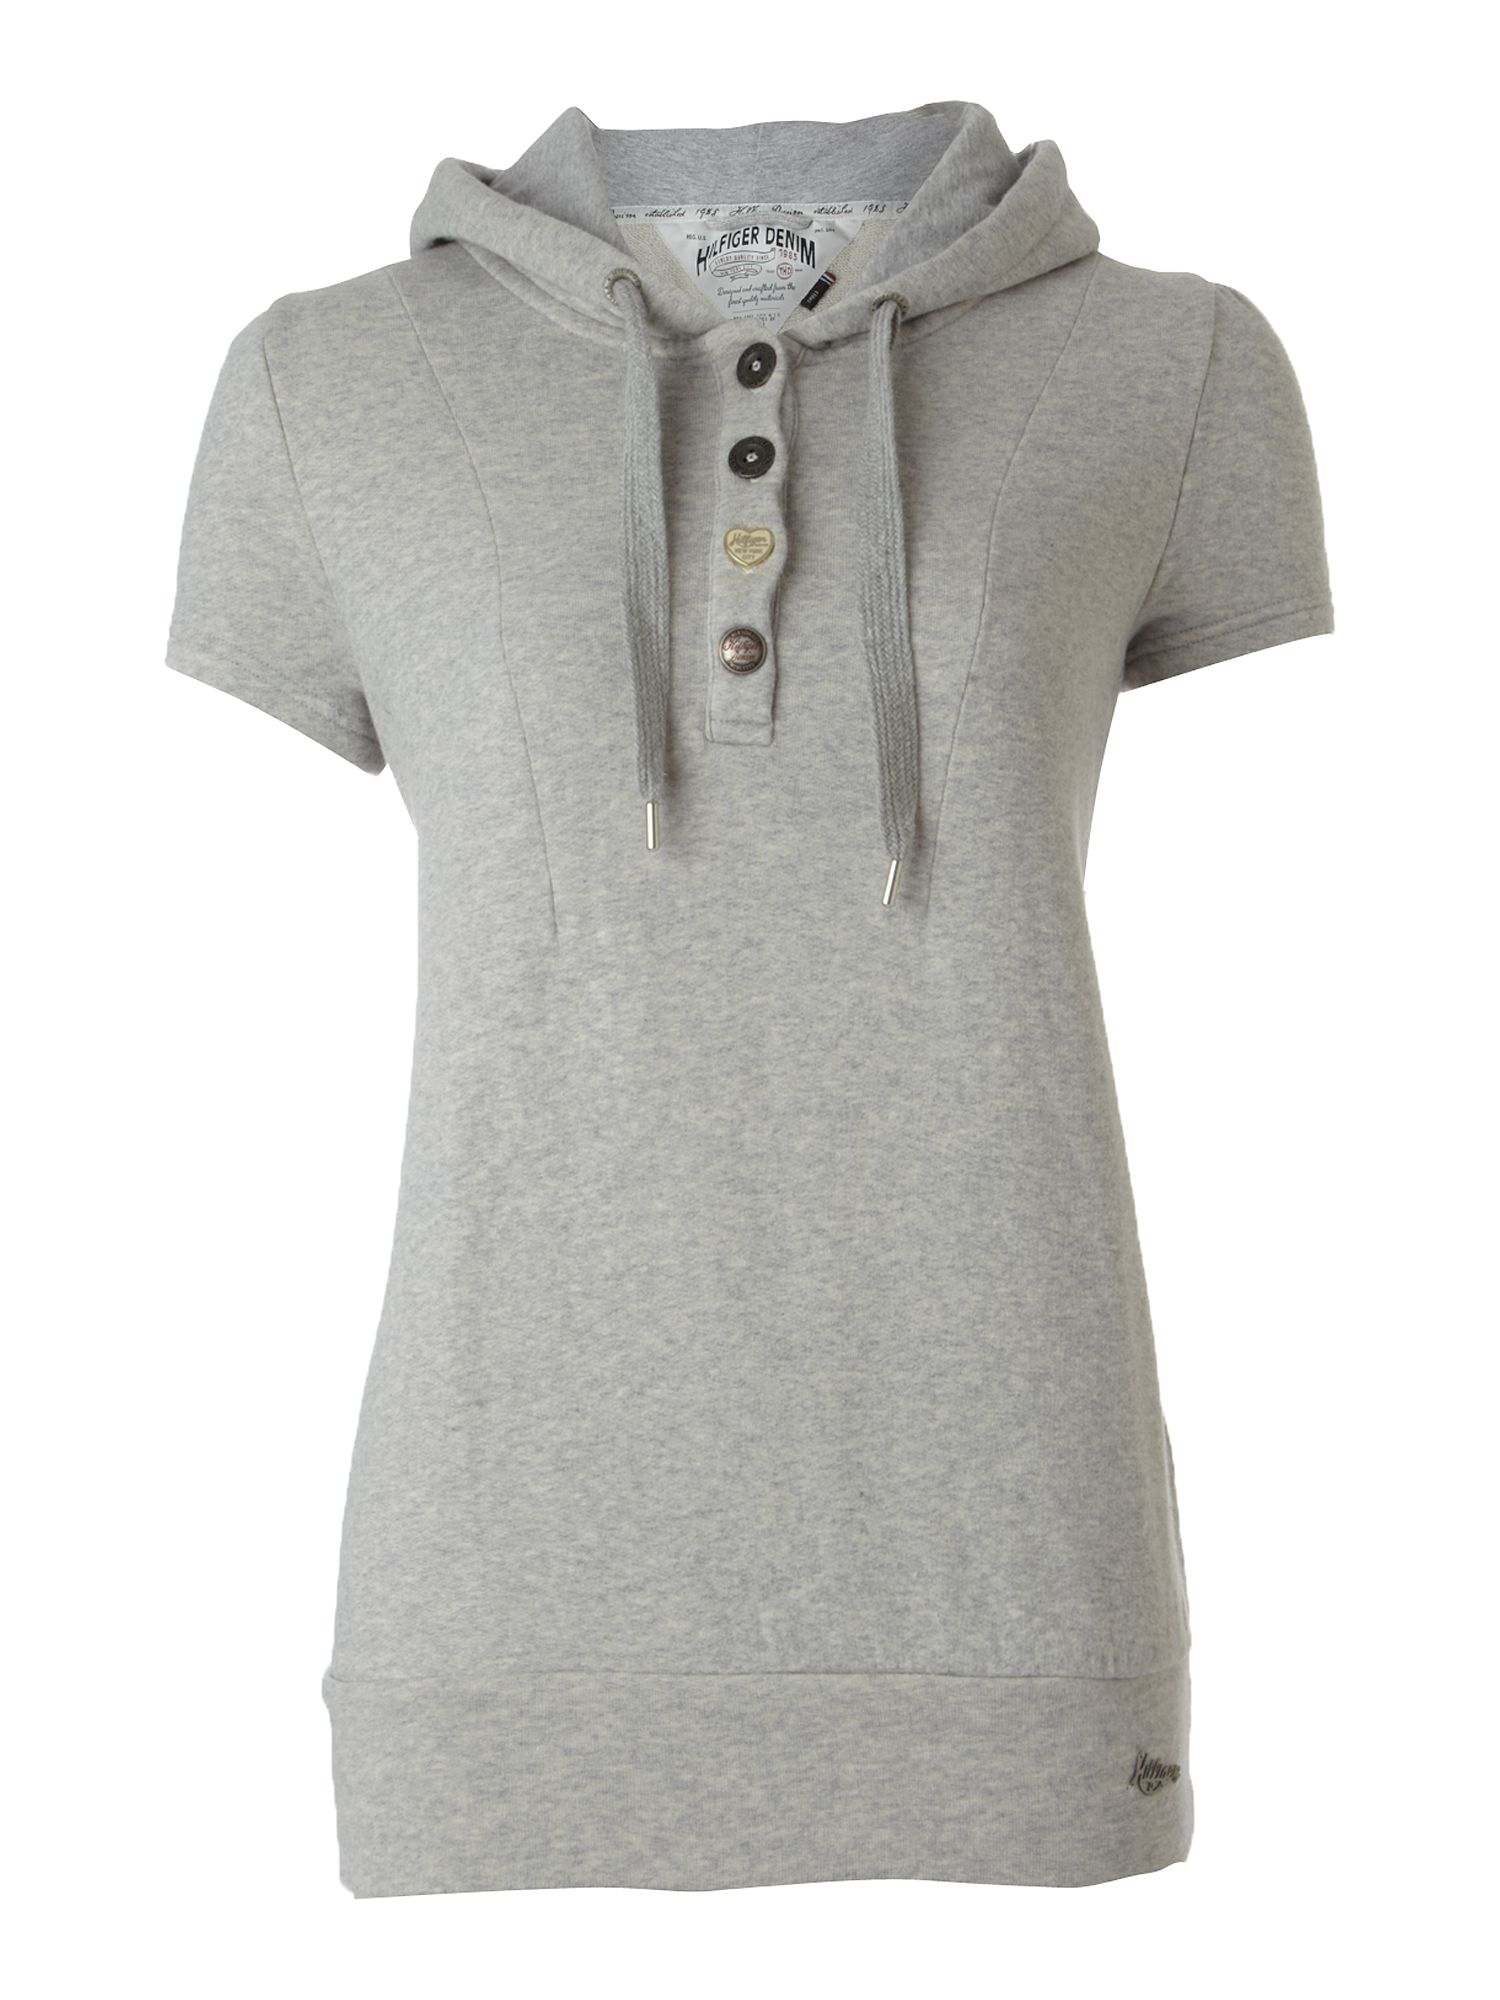 Tommy Hilfiger Tory cotton t-shirt Grey product image